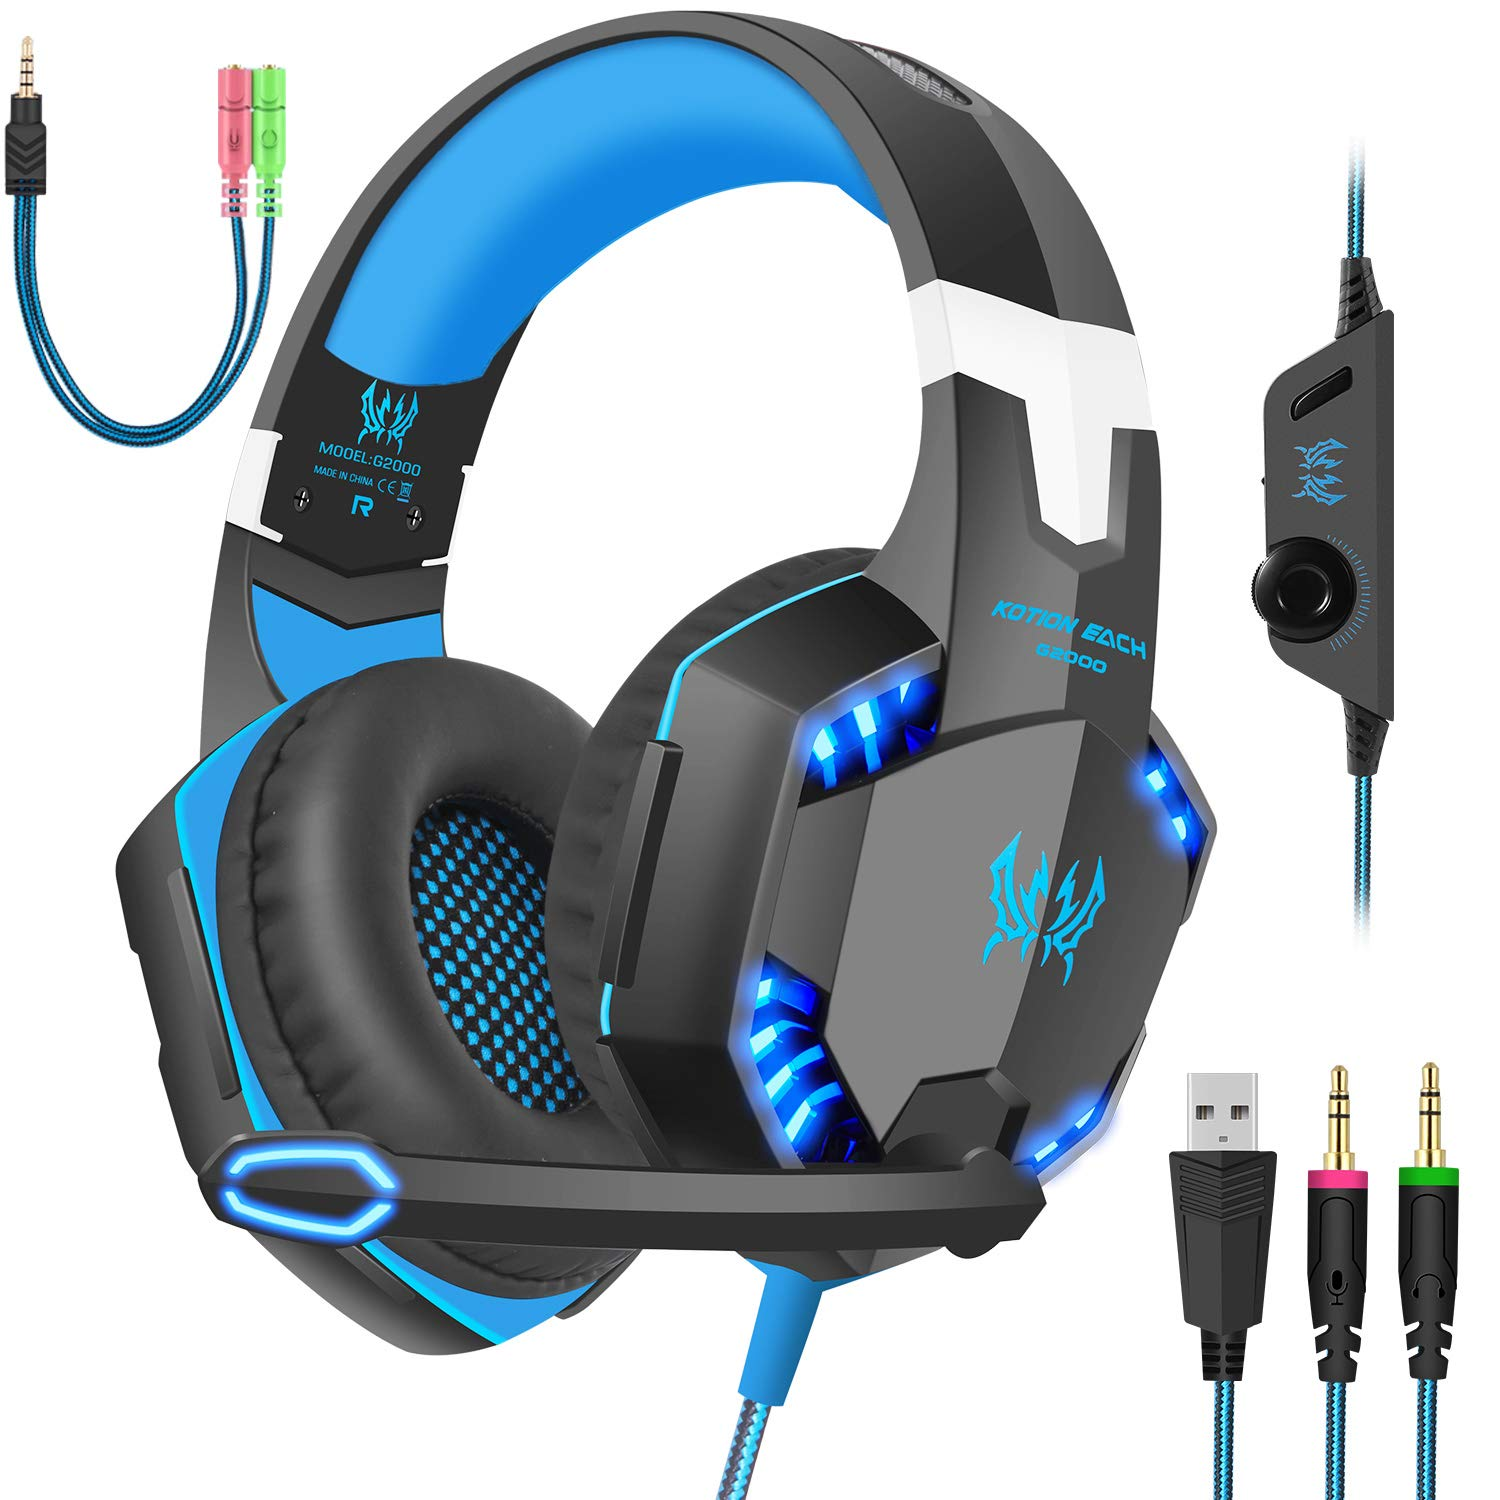 Gaming Headset with Mic for PC, PS4, Xbox One